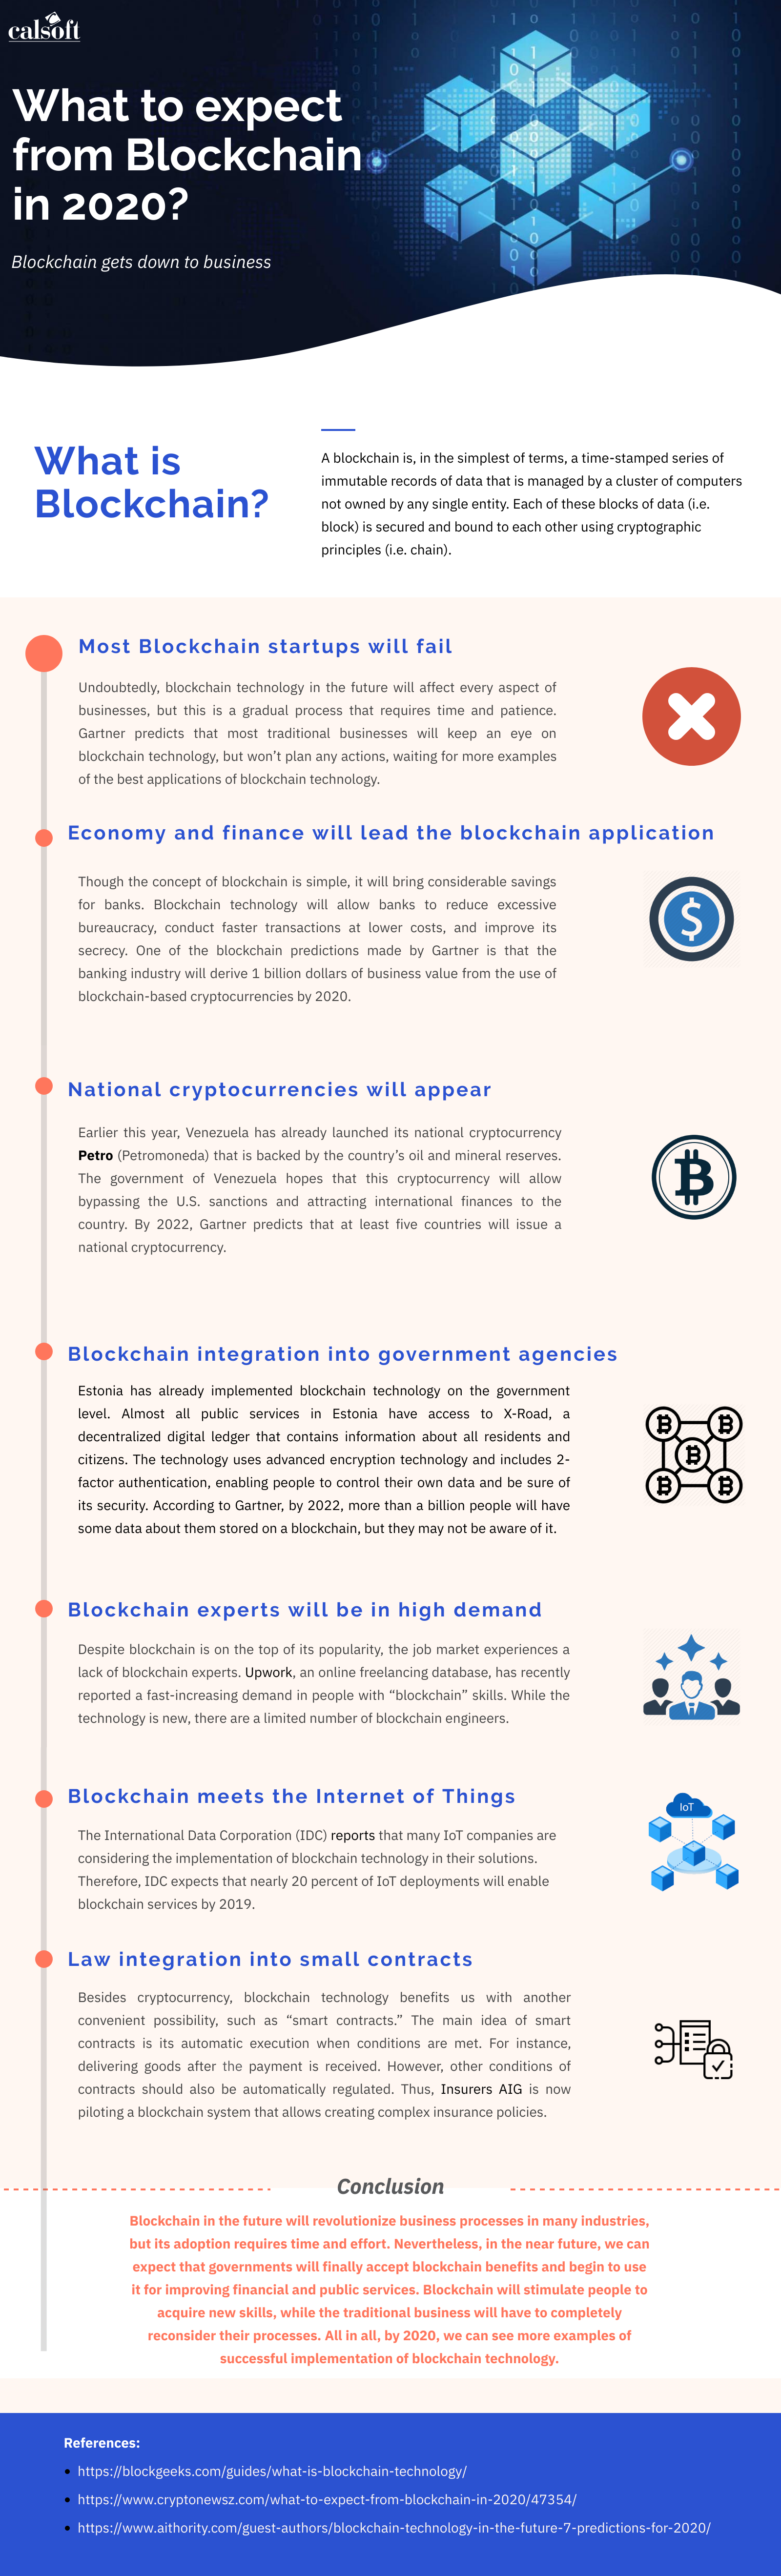 What to Expect from Blockchain in 2020?